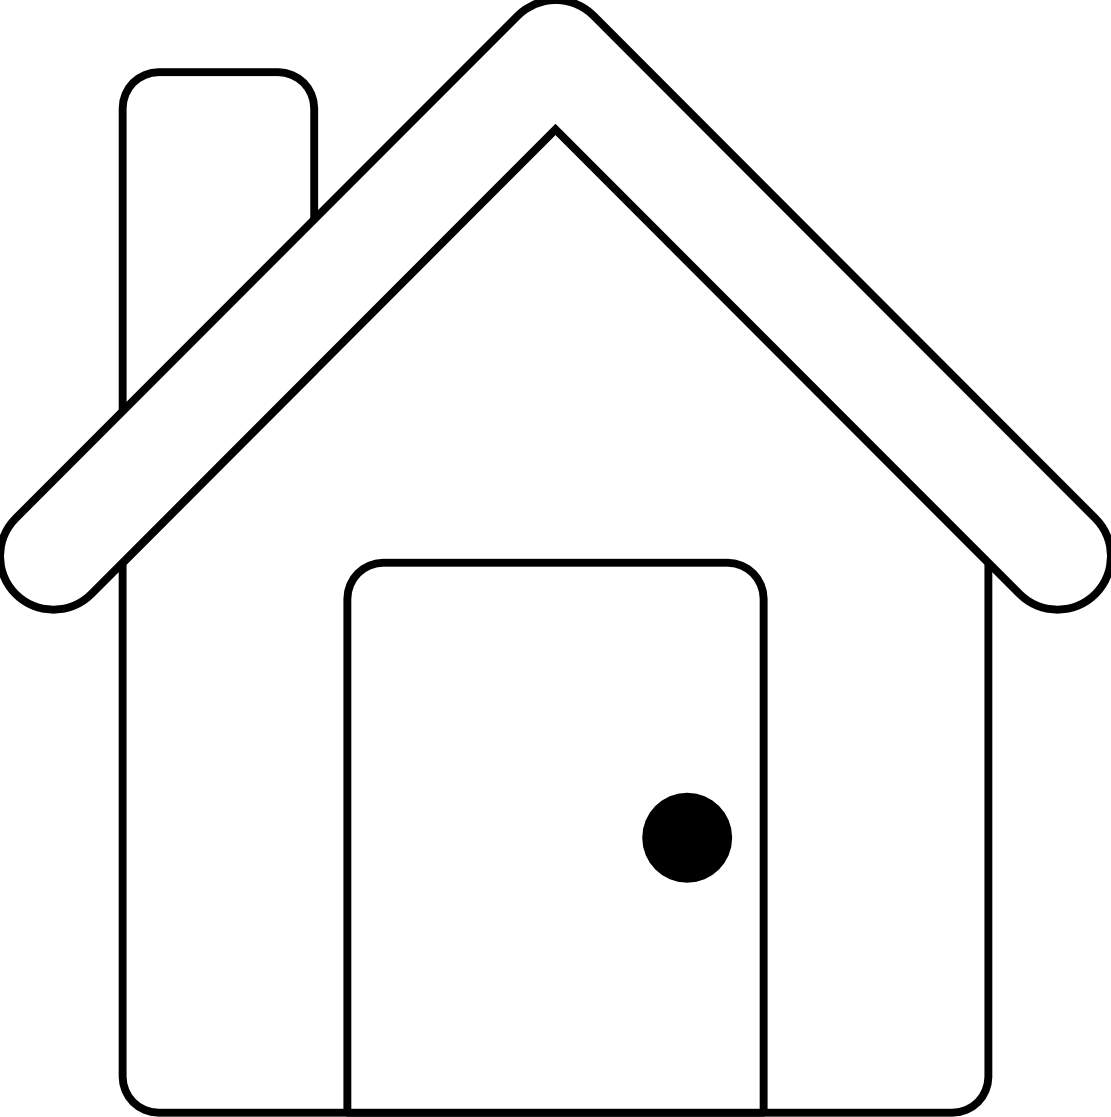 House outline clipart free jpg freeuse stock House Outline Clipart Black And White | Clipart Panda - Free Clipart ... jpg freeuse stock